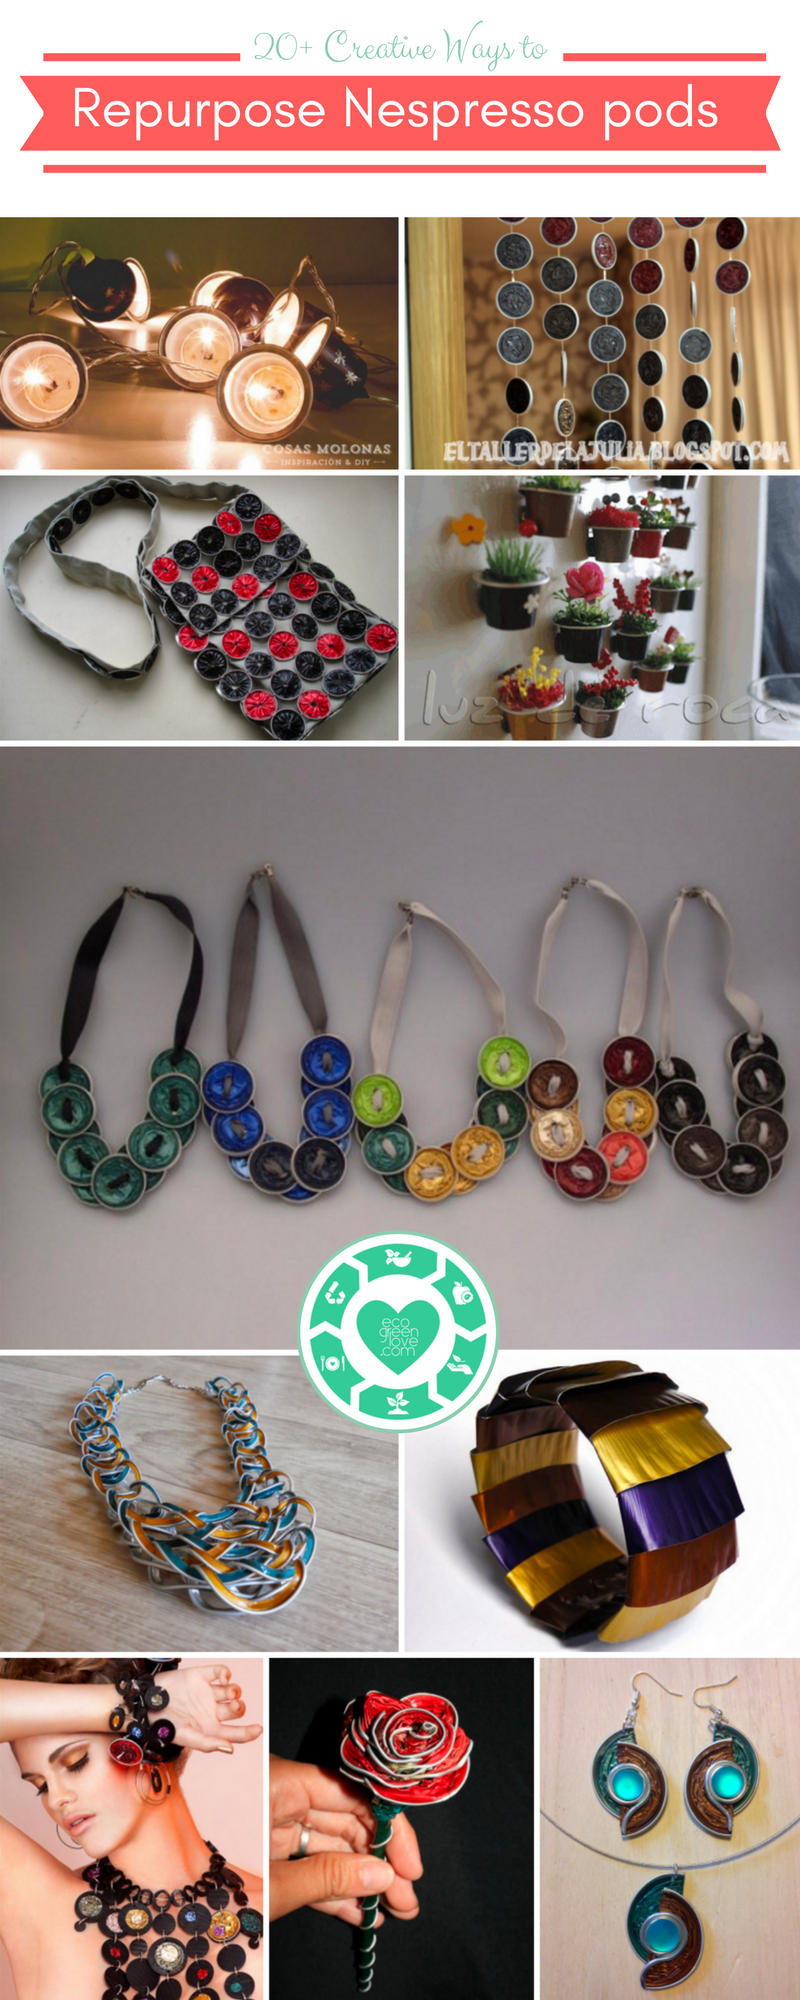 Pin On Upcycle Or Recycle